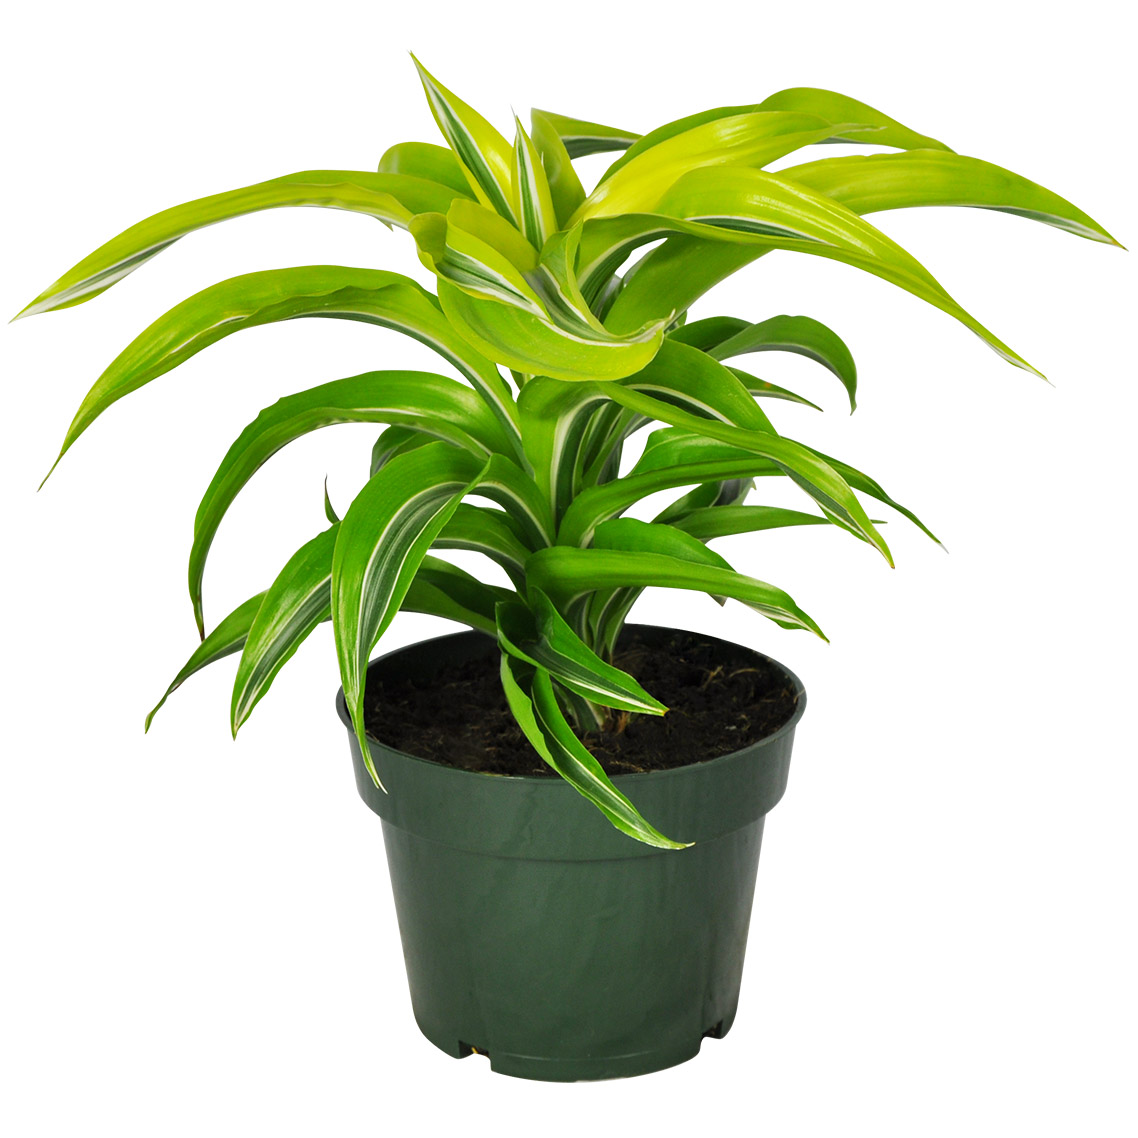 Dracaena Lemon Lime Tip